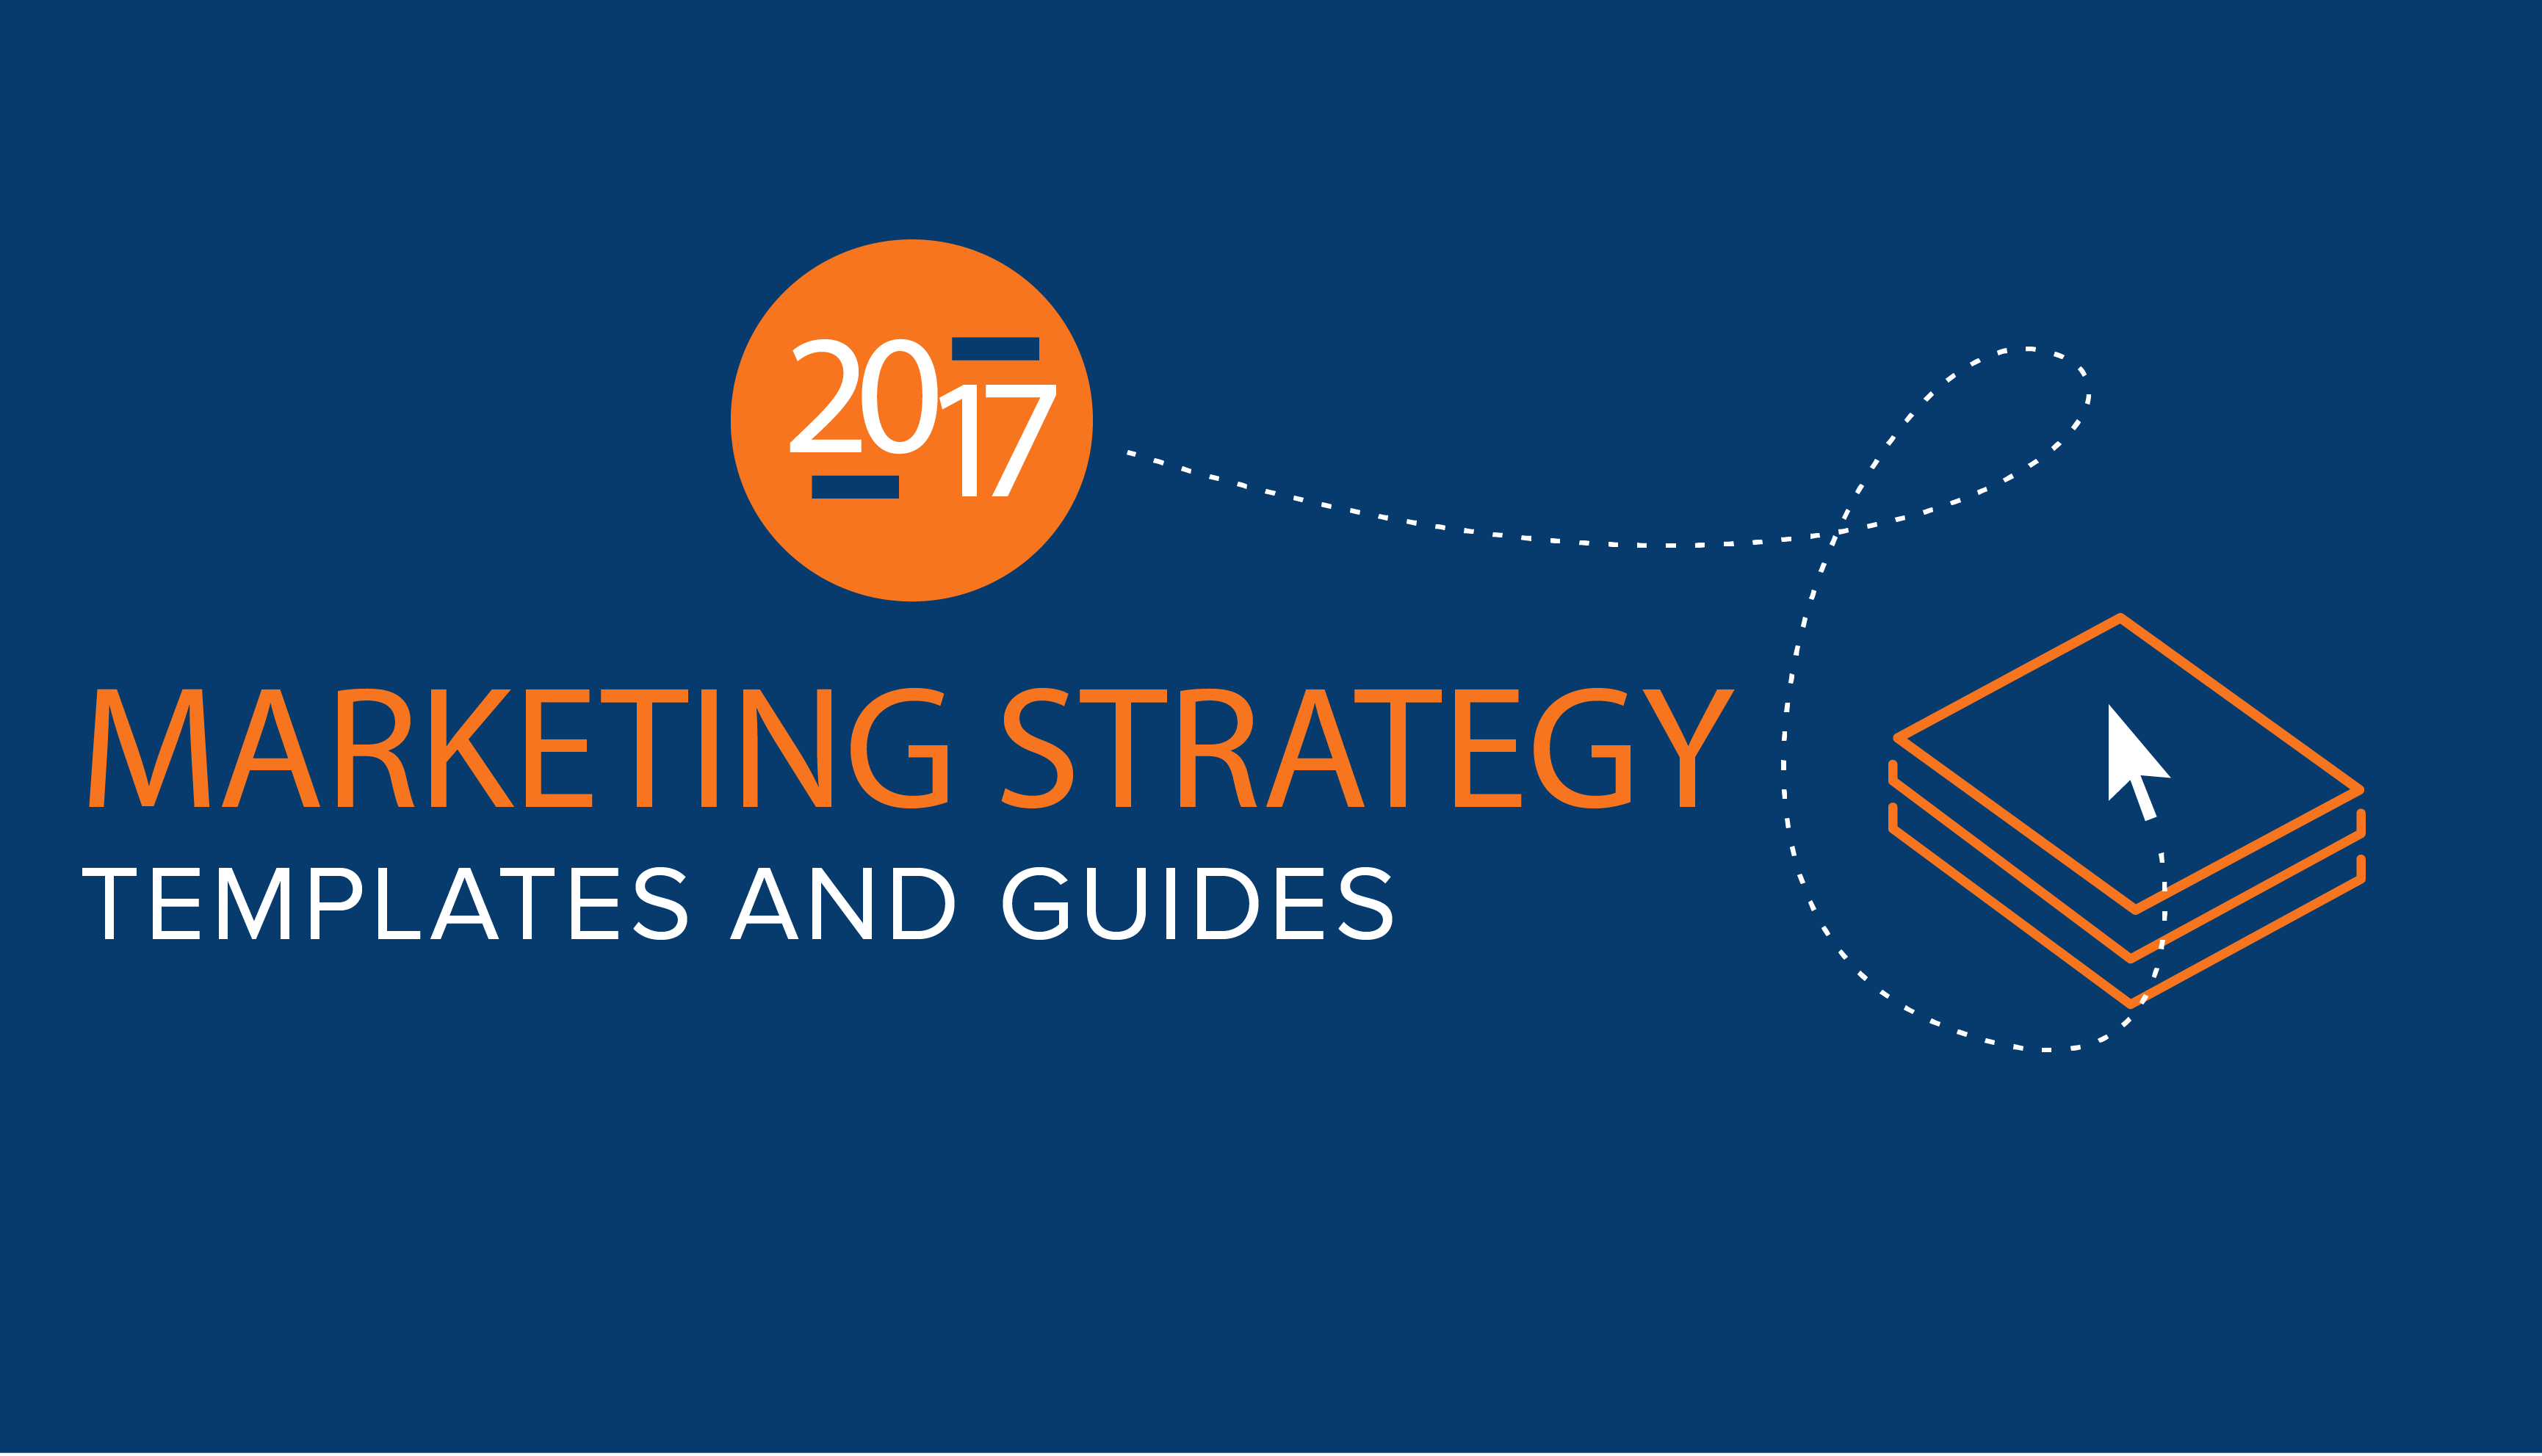 2017 marketing strategy templates & guides, Presentation templates